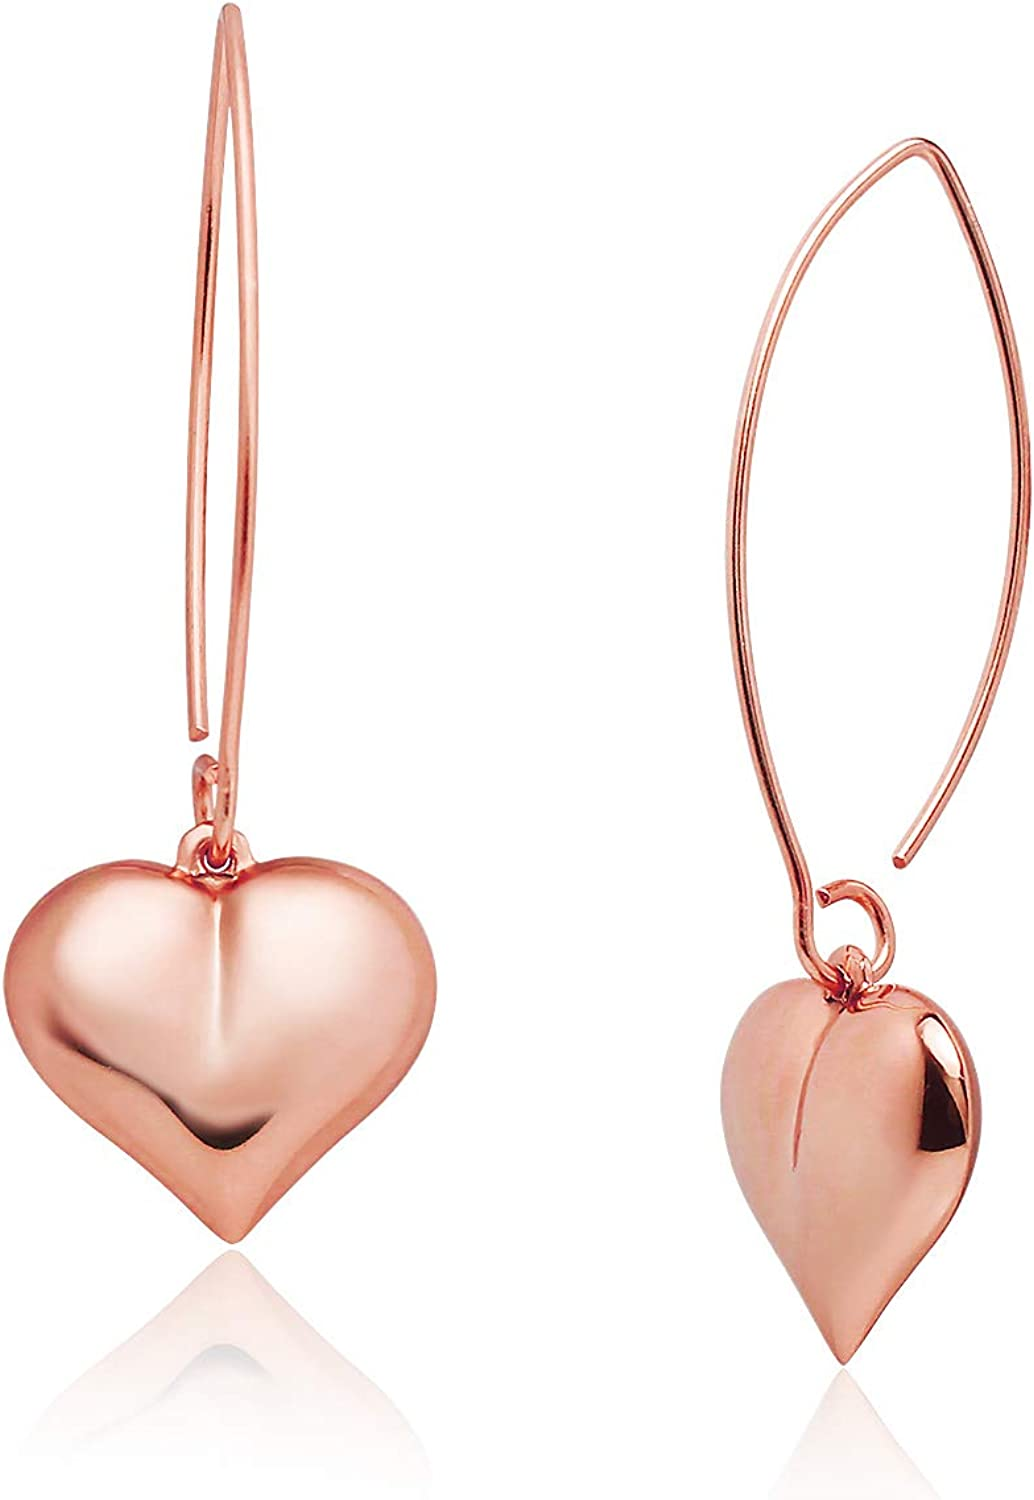 Big Apple Hoops - Valentine Love Heart Dangle Drop Earrings Made from Real Solid 925 Sterling Silver in 3 Color Rose, Silver or Gold with Protective Electrocoated Finish for Maximum Anti-Tarnish